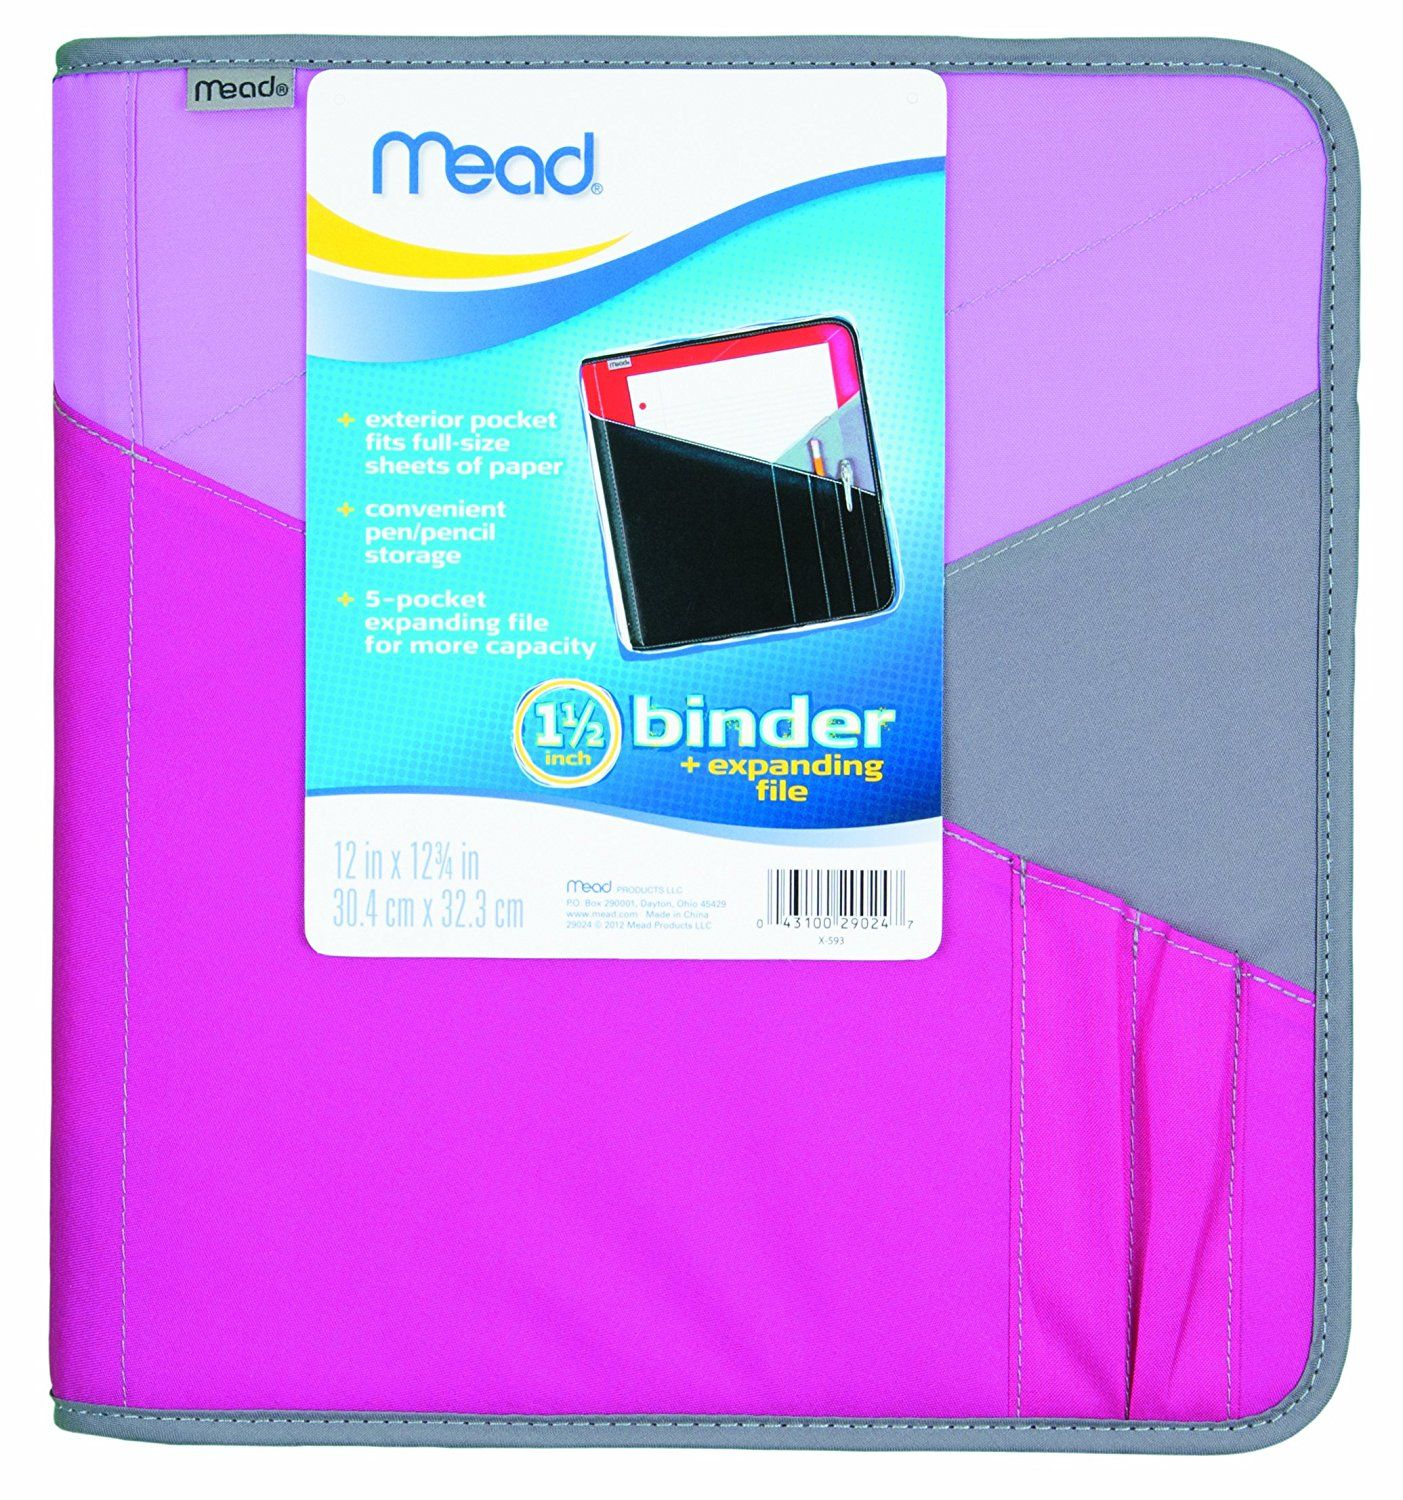 For Holding Activities All In One Place Amazon Com Mead 1 1 2 Inch Zipper Binder With Expanding File 3 Ring Binder Durable Zipper Binder Binder Mead